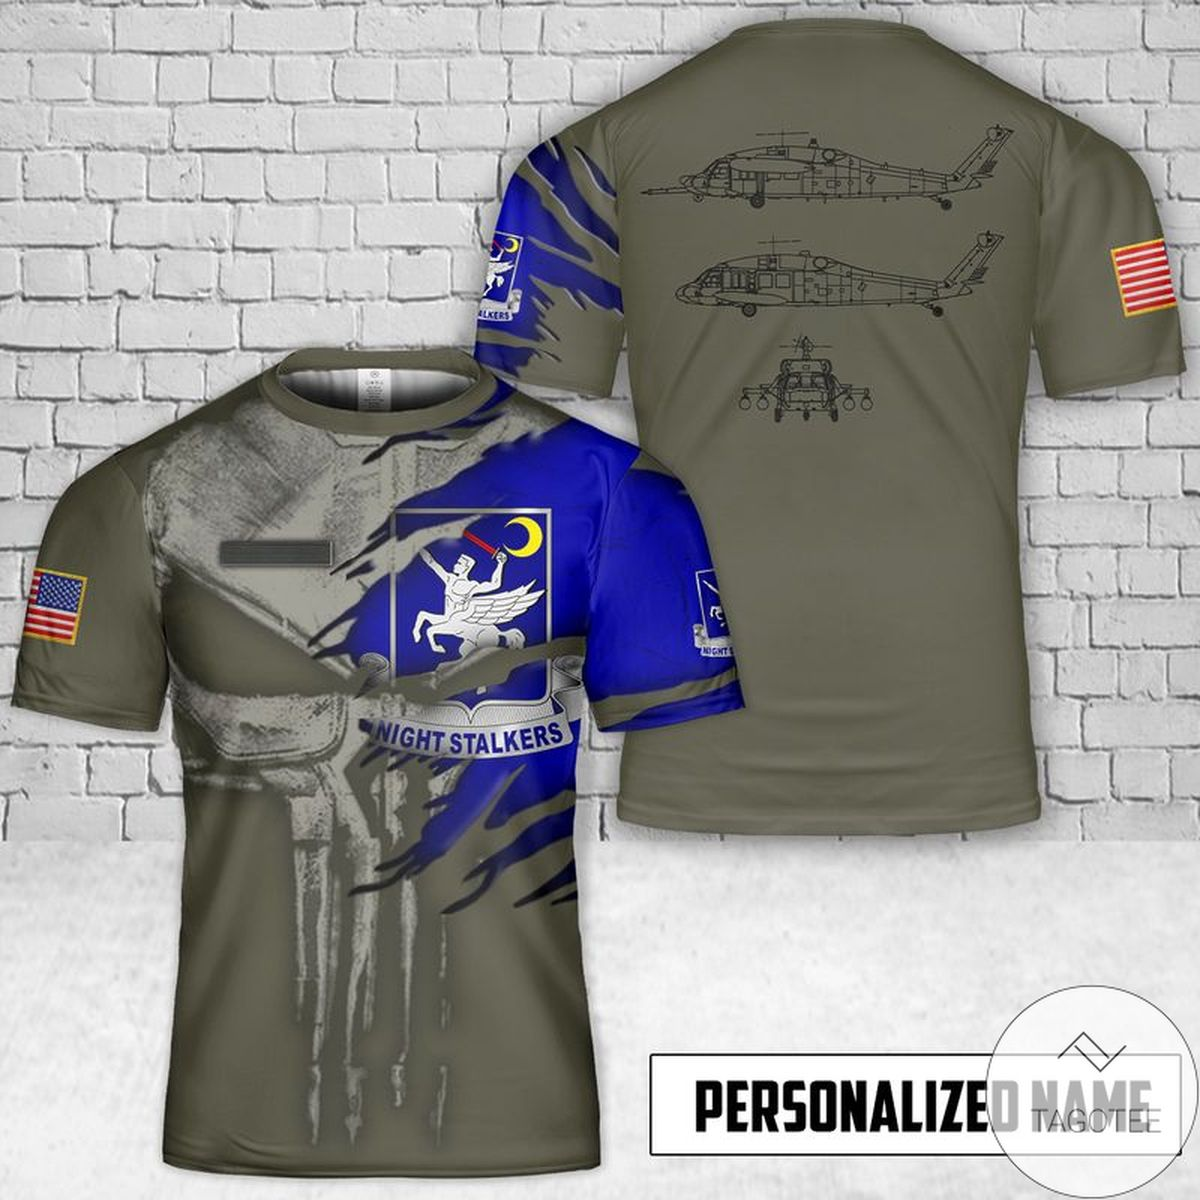 Personalized Sikorsky UH-60 3D T-Shirt